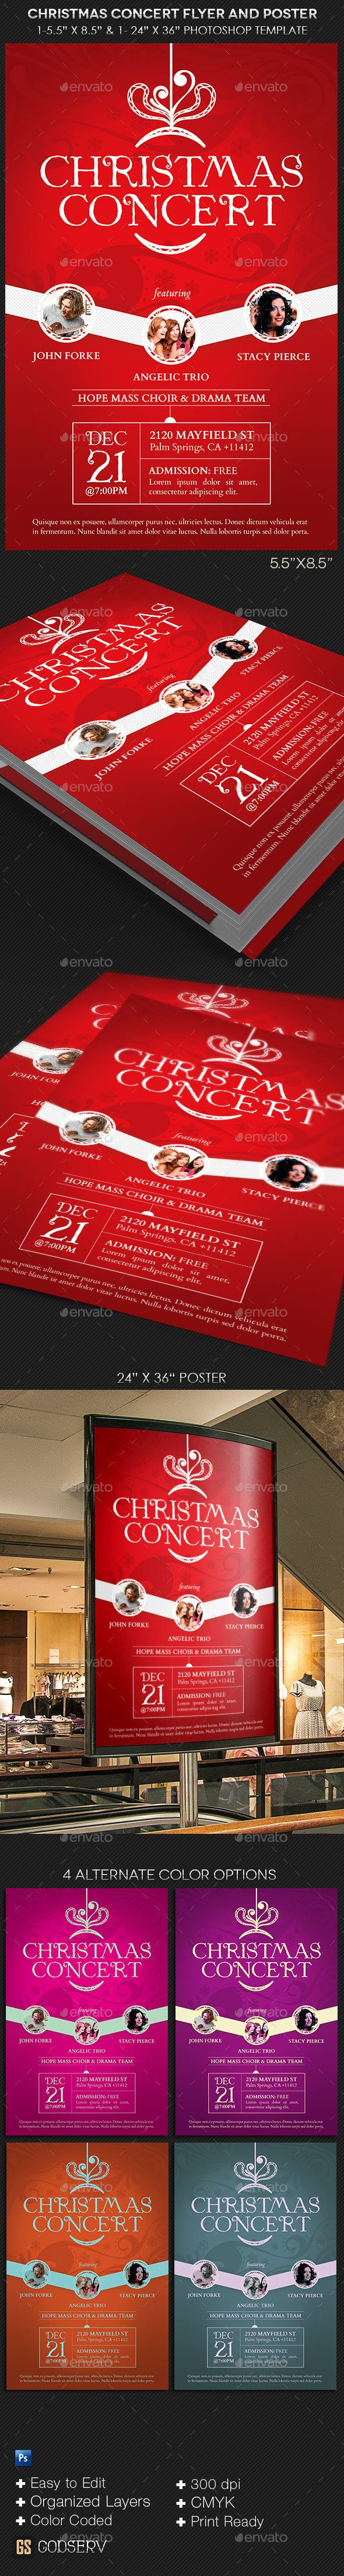 christmas party event ticket 02 event ticket event ticket christmas concert flyer poster template